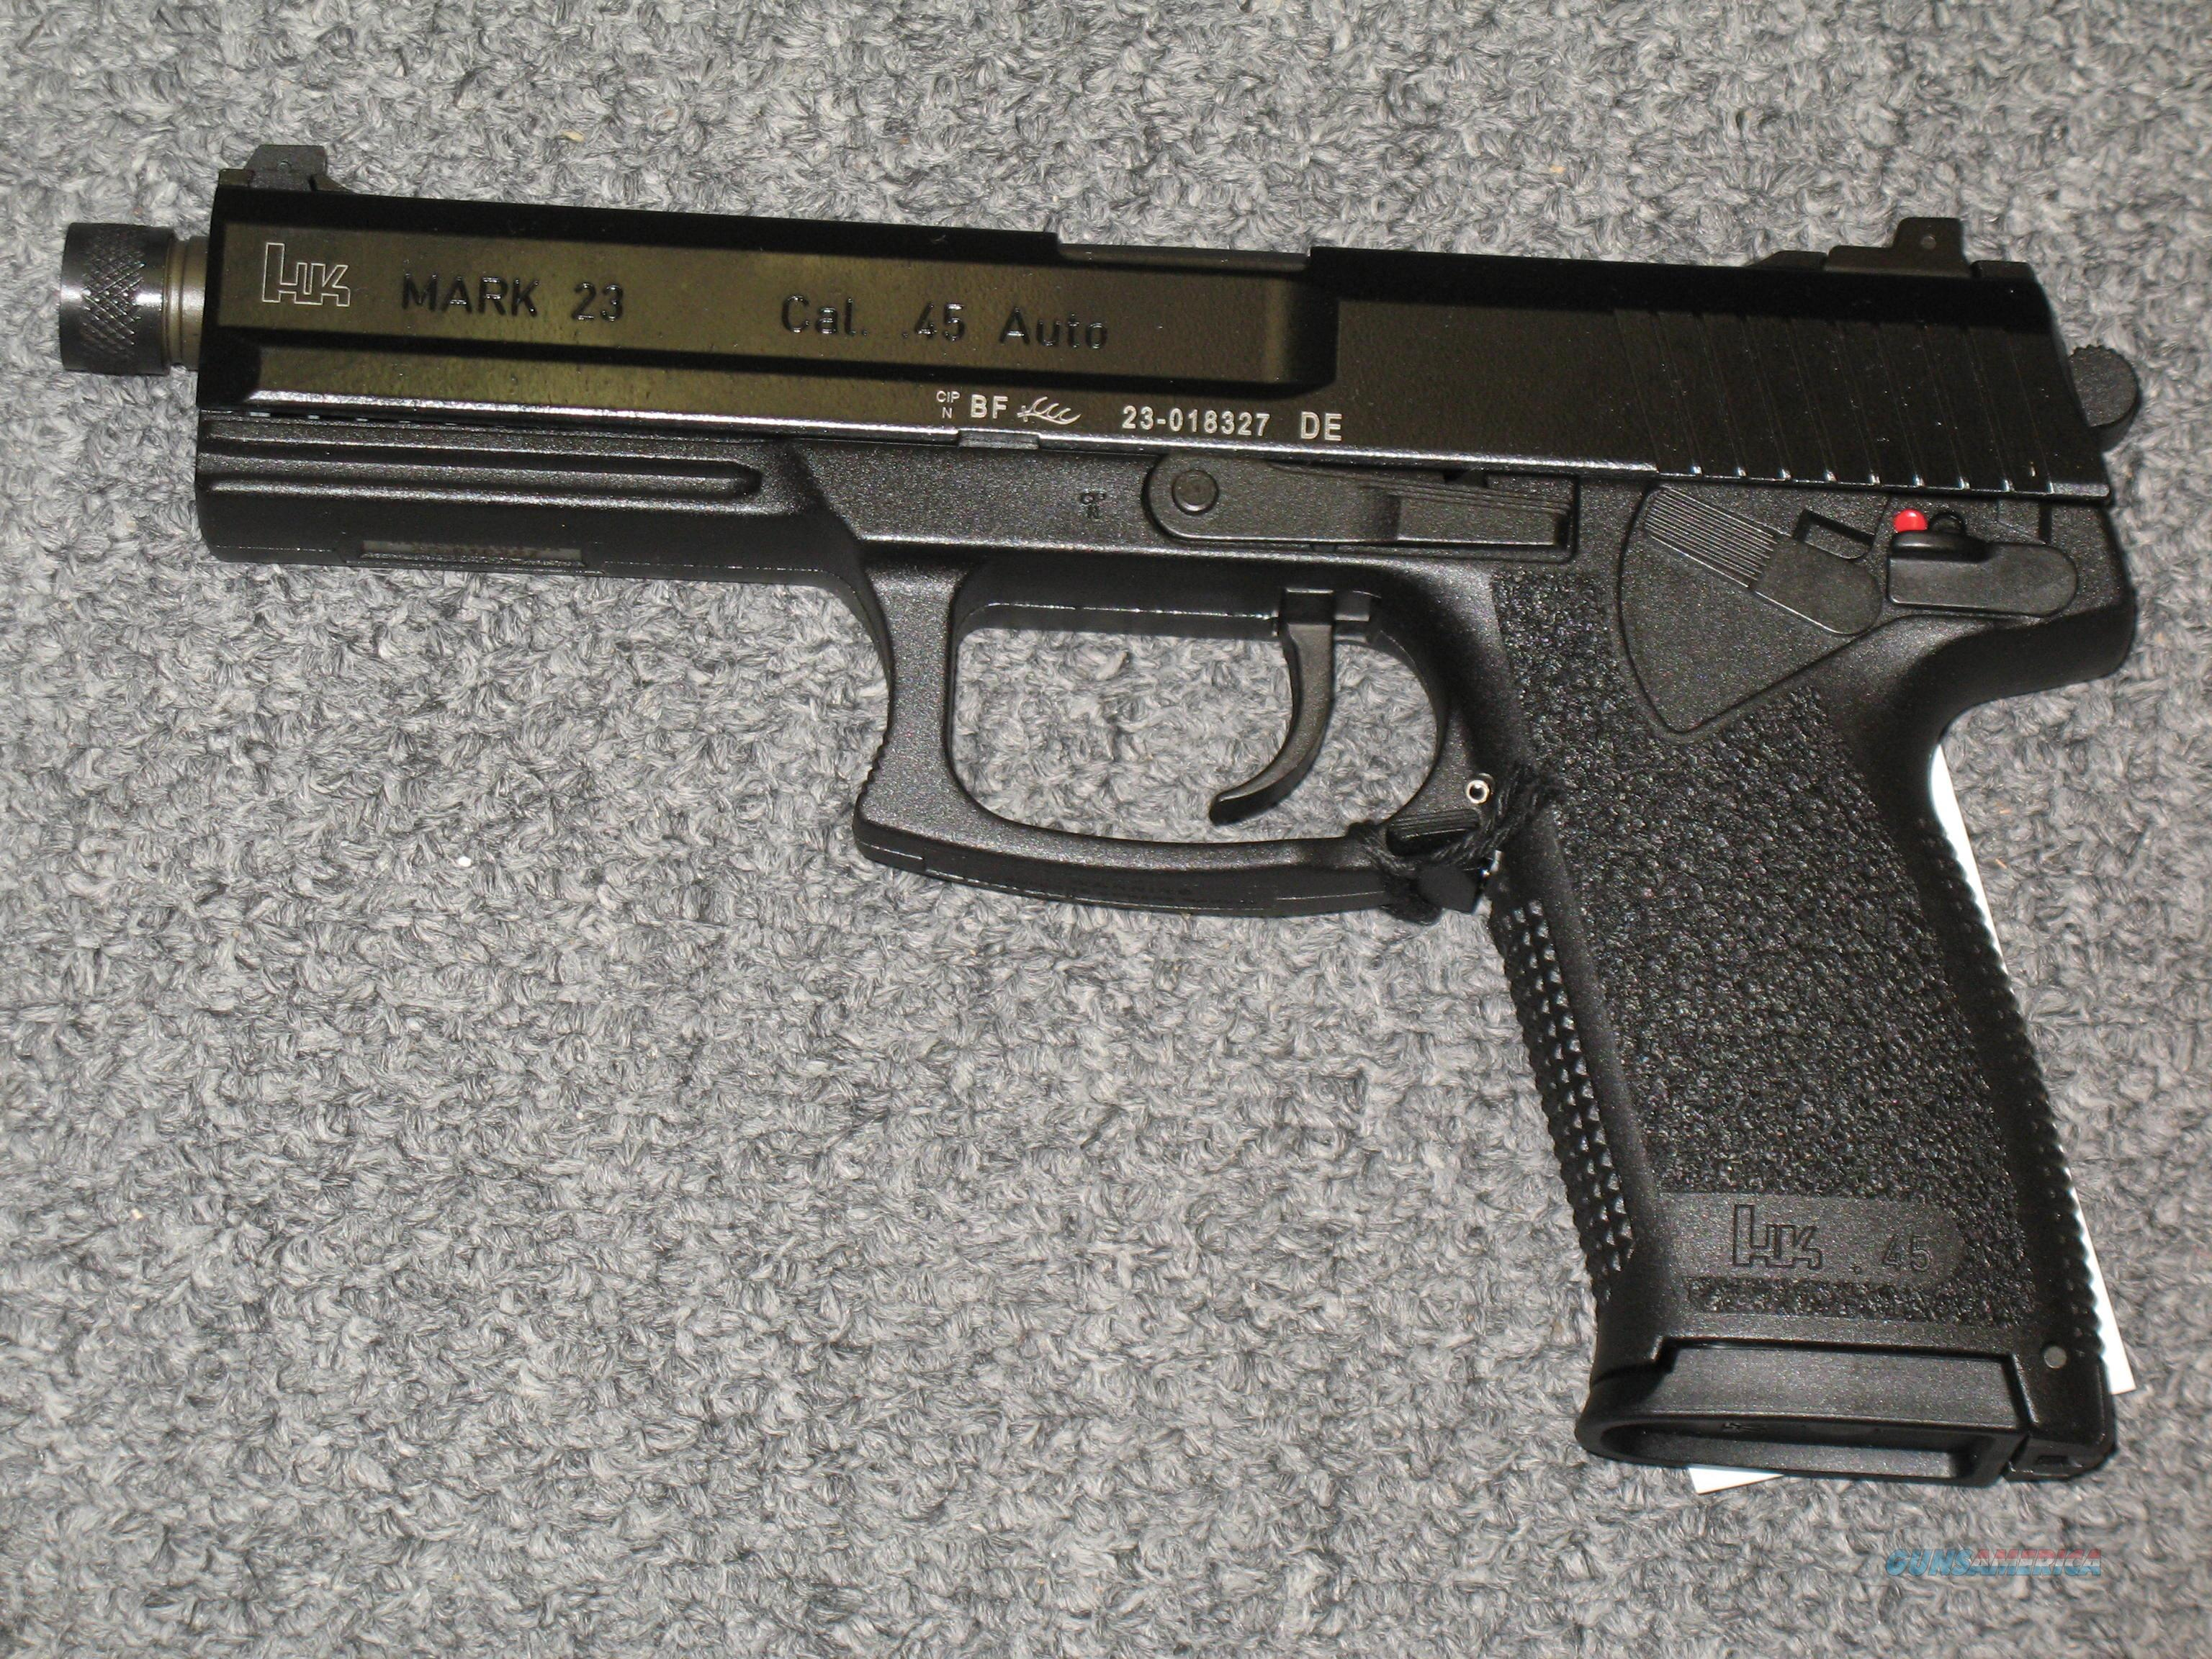 Mark 23  w/threaded barrel  Guns > Pistols > Heckler & Koch Pistols > Polymer Frame